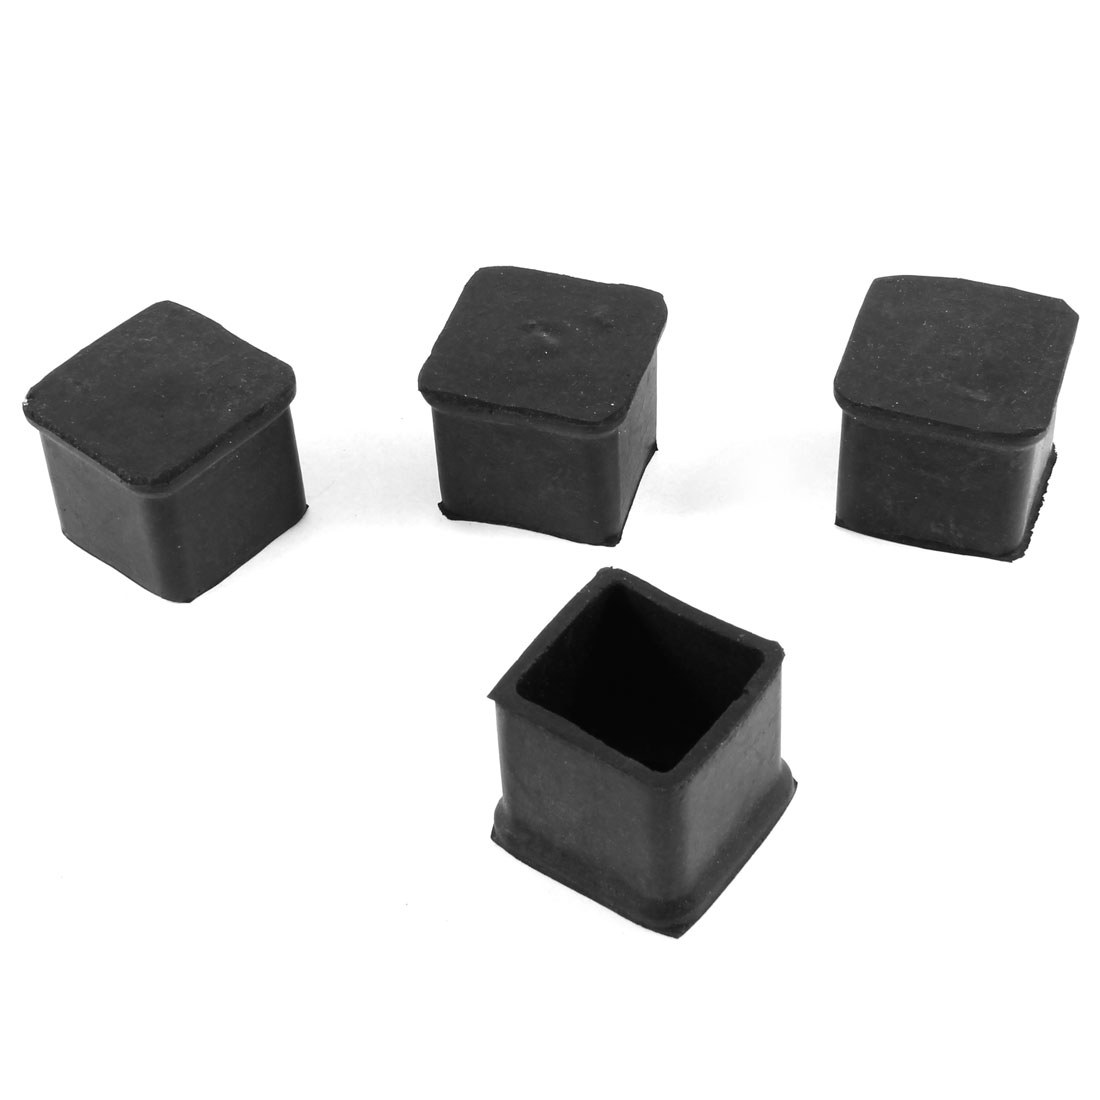 "4 Pcs 1.6"" x 1.6"" x 1.3"" Furniture Desk Chair Foot Nonslip Covers Black"